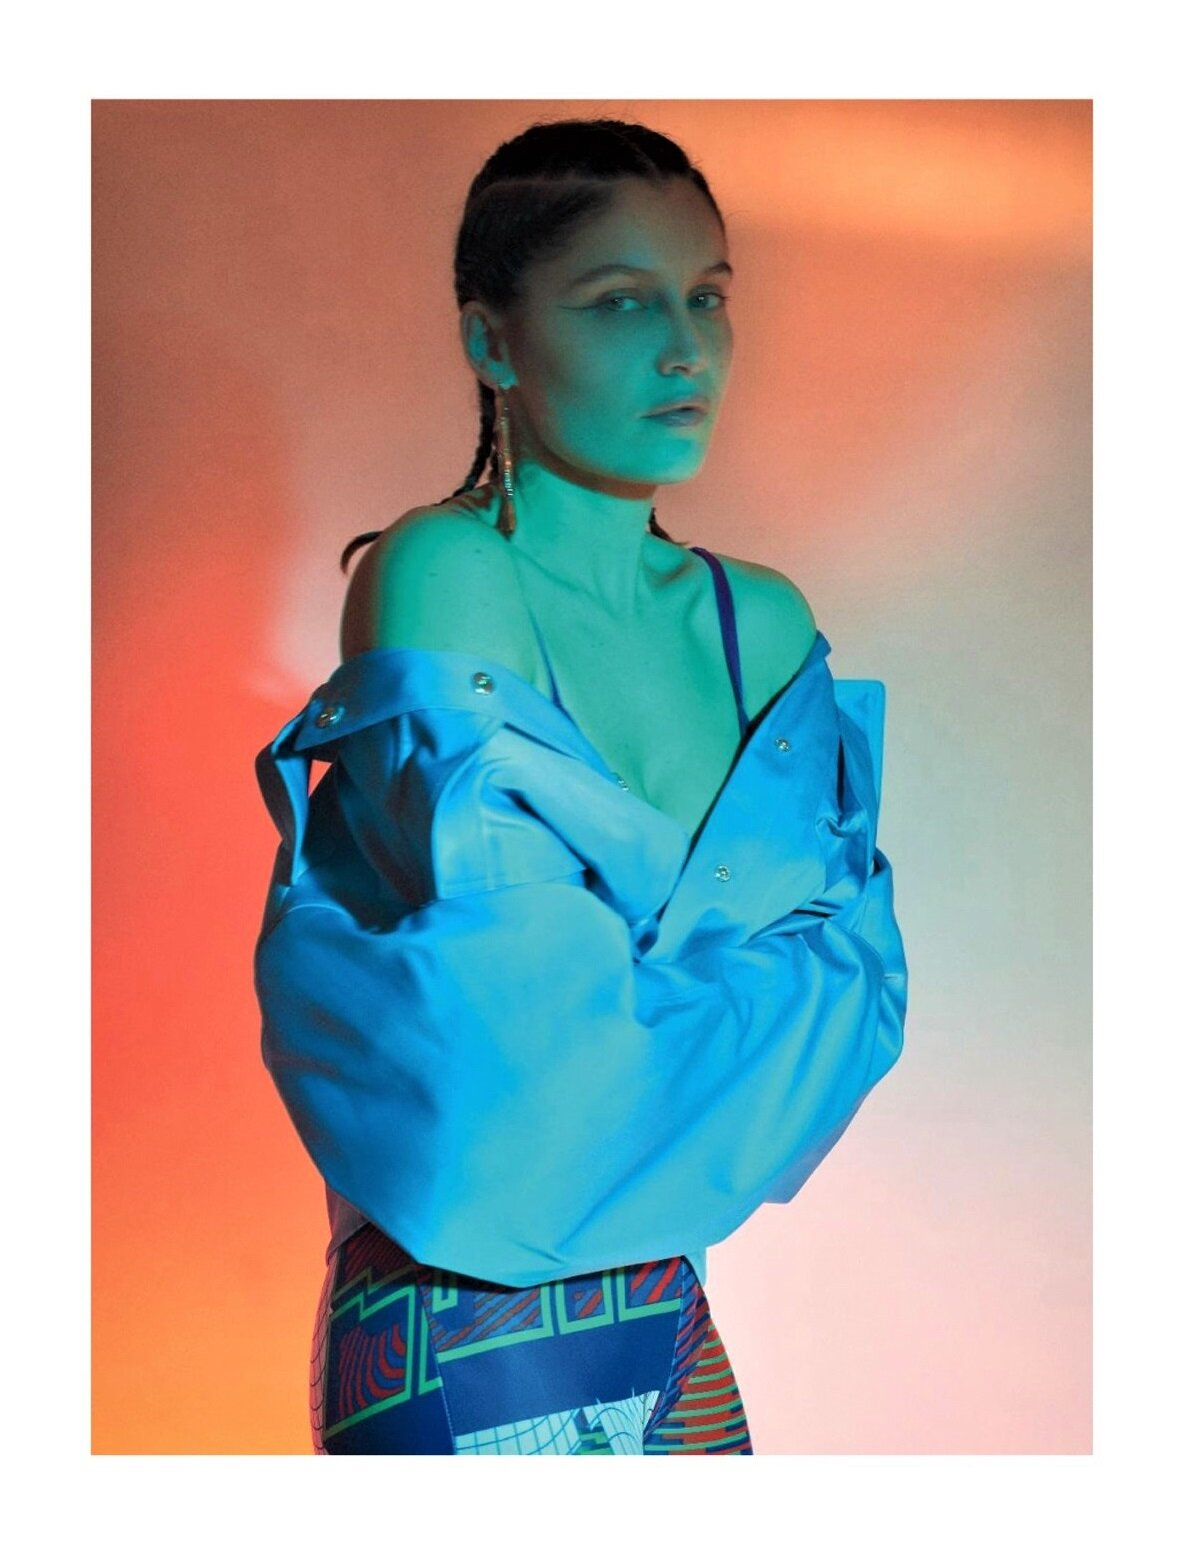 Laetitia Casta for Numéro Magazine #213 'Corps' May 2020 issue. Photographed by Emmanuel Giraud and styled by Barbara Loison.